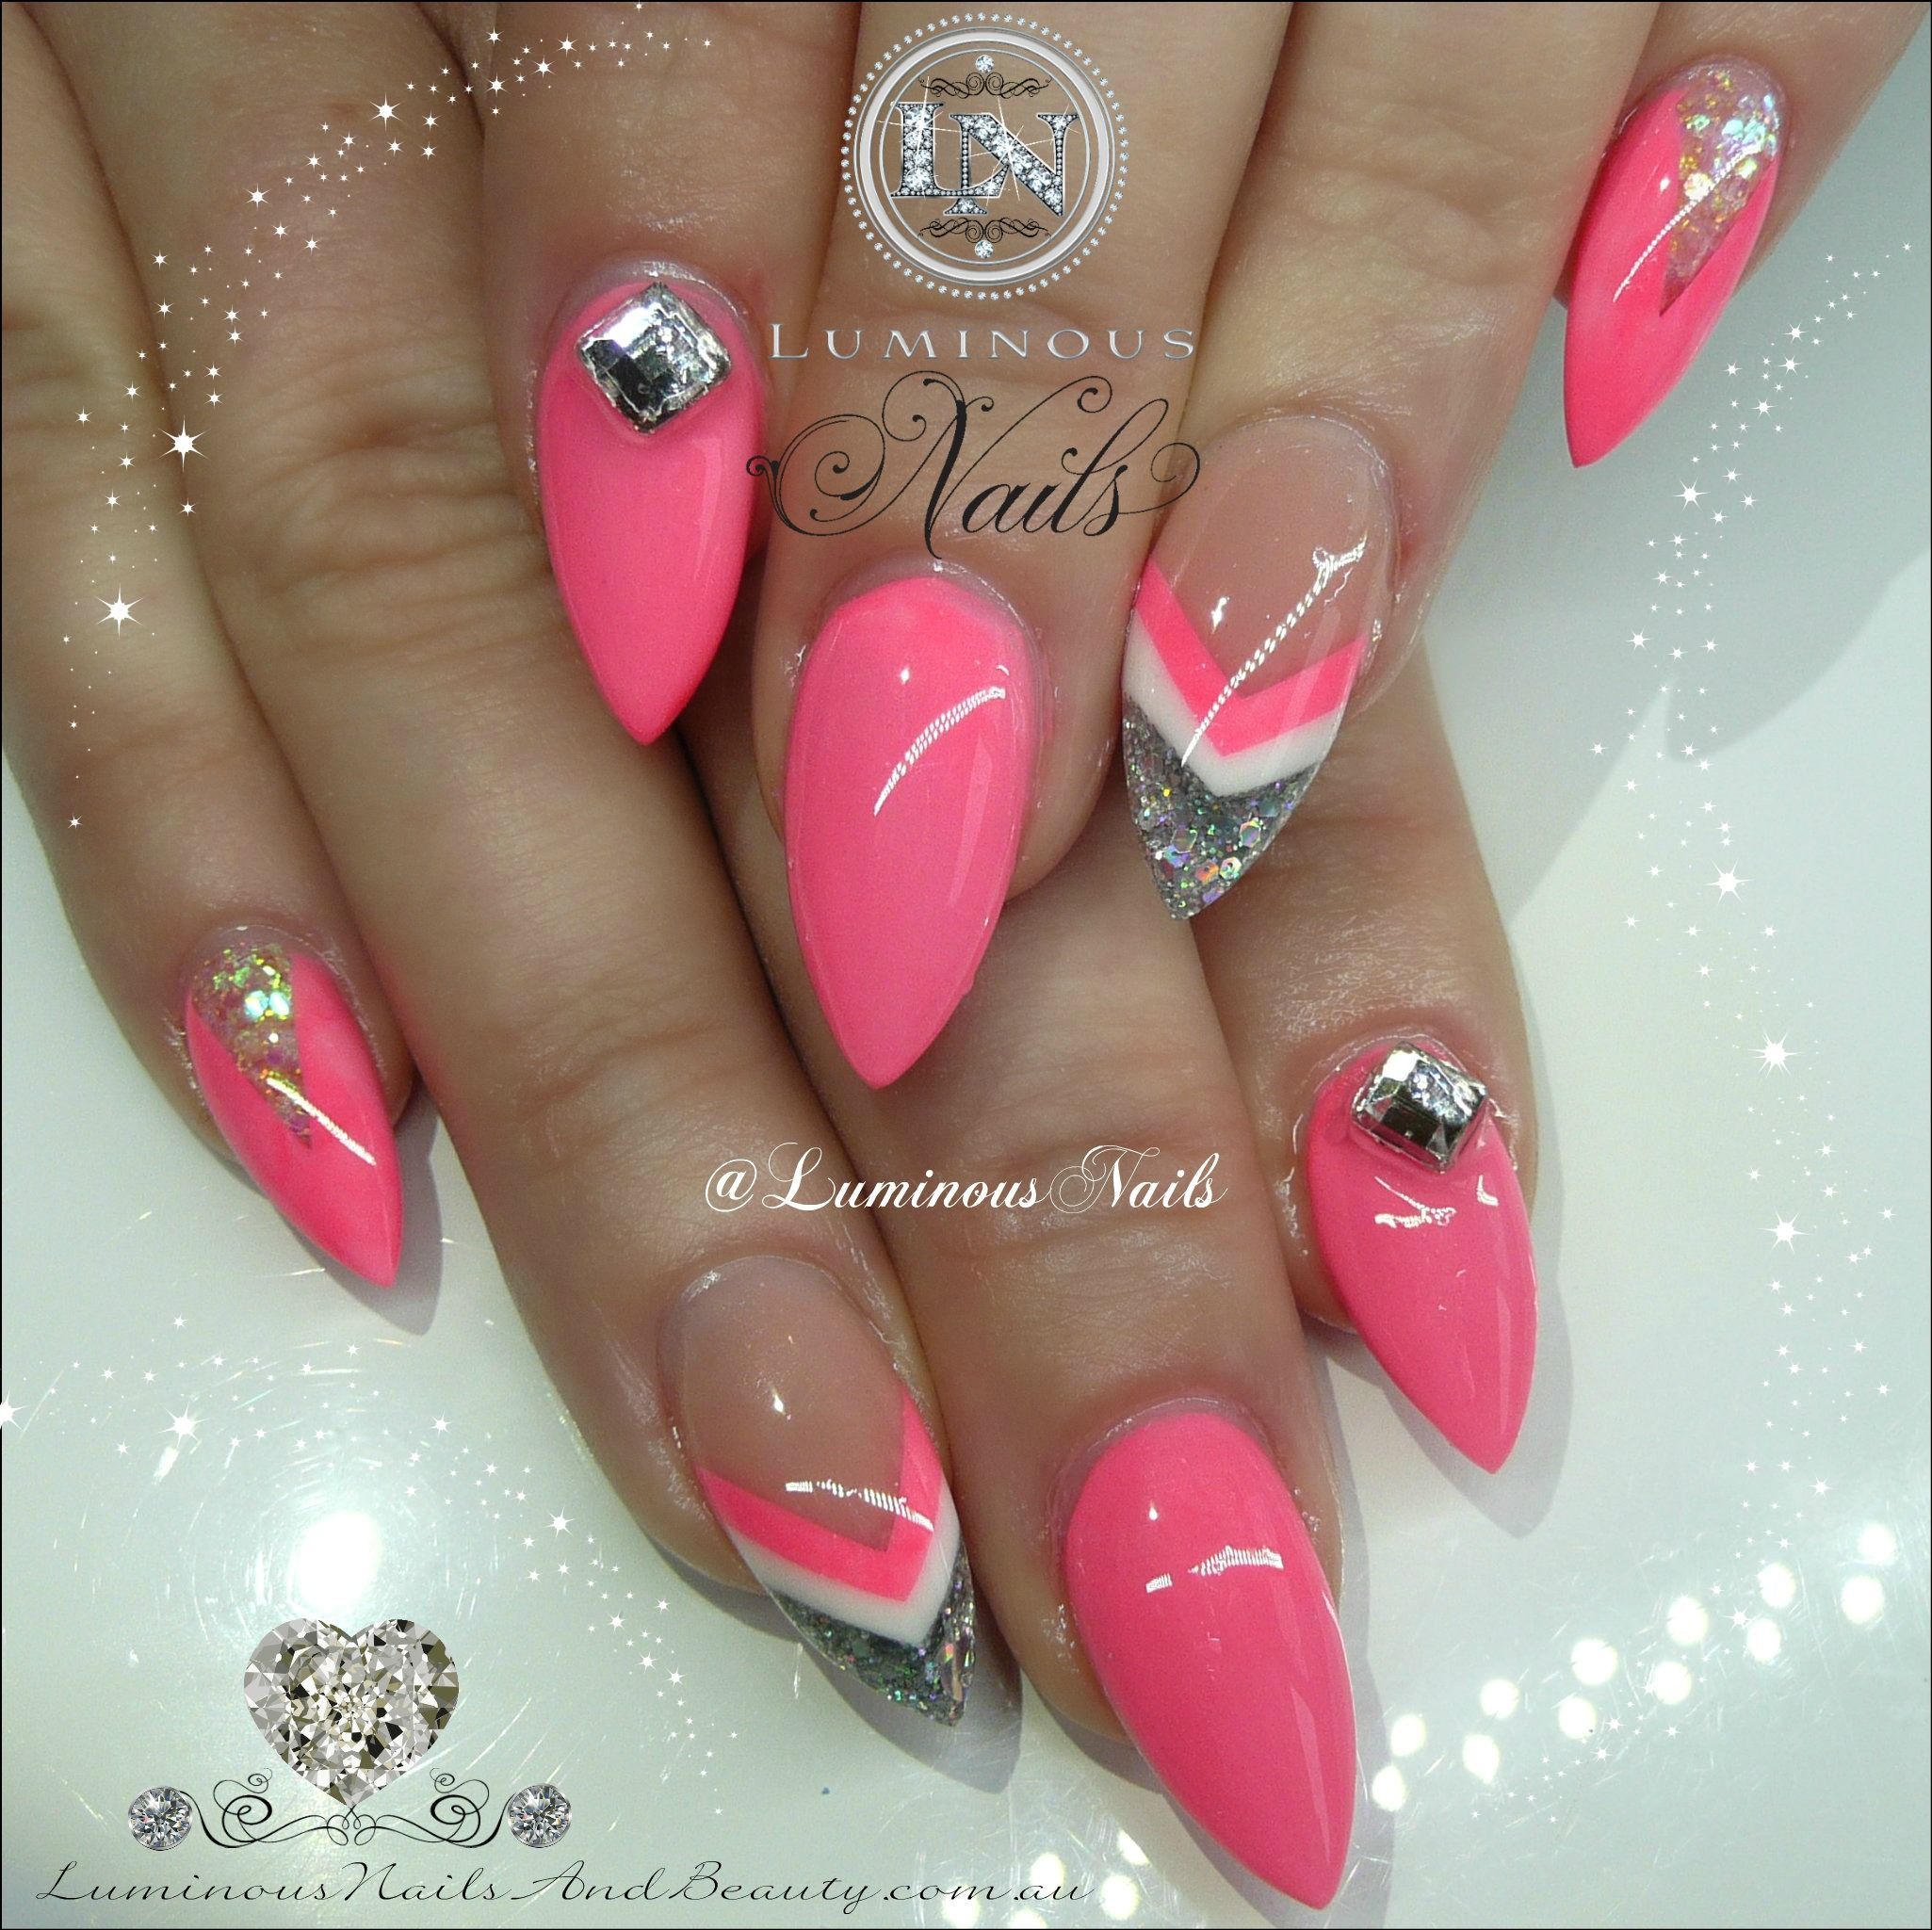 luminous-nails-beauty-gold-coast-queensland.-pink-white-silver